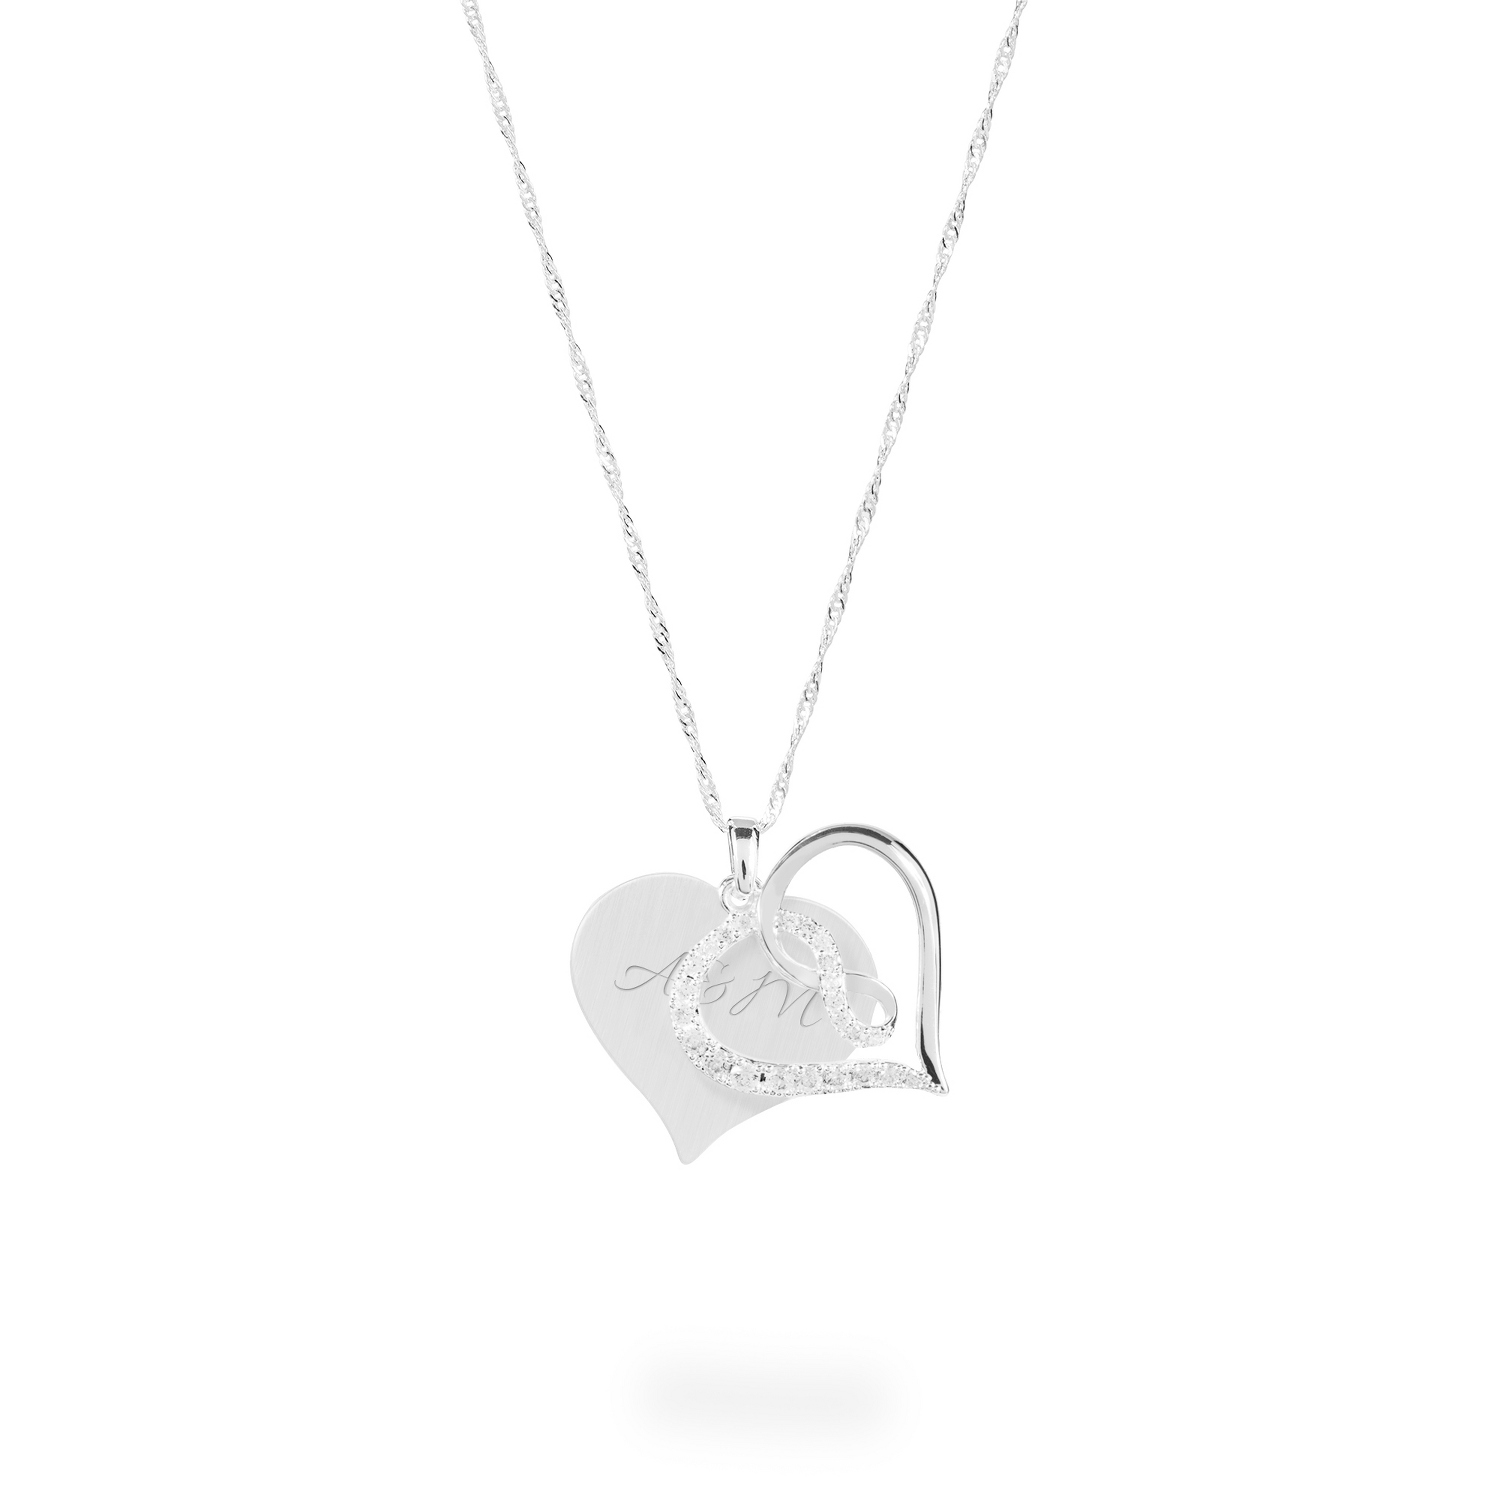 Engraved pendant necklaces at things remembered infinity heart crystal swing necklace aloadofball Gallery